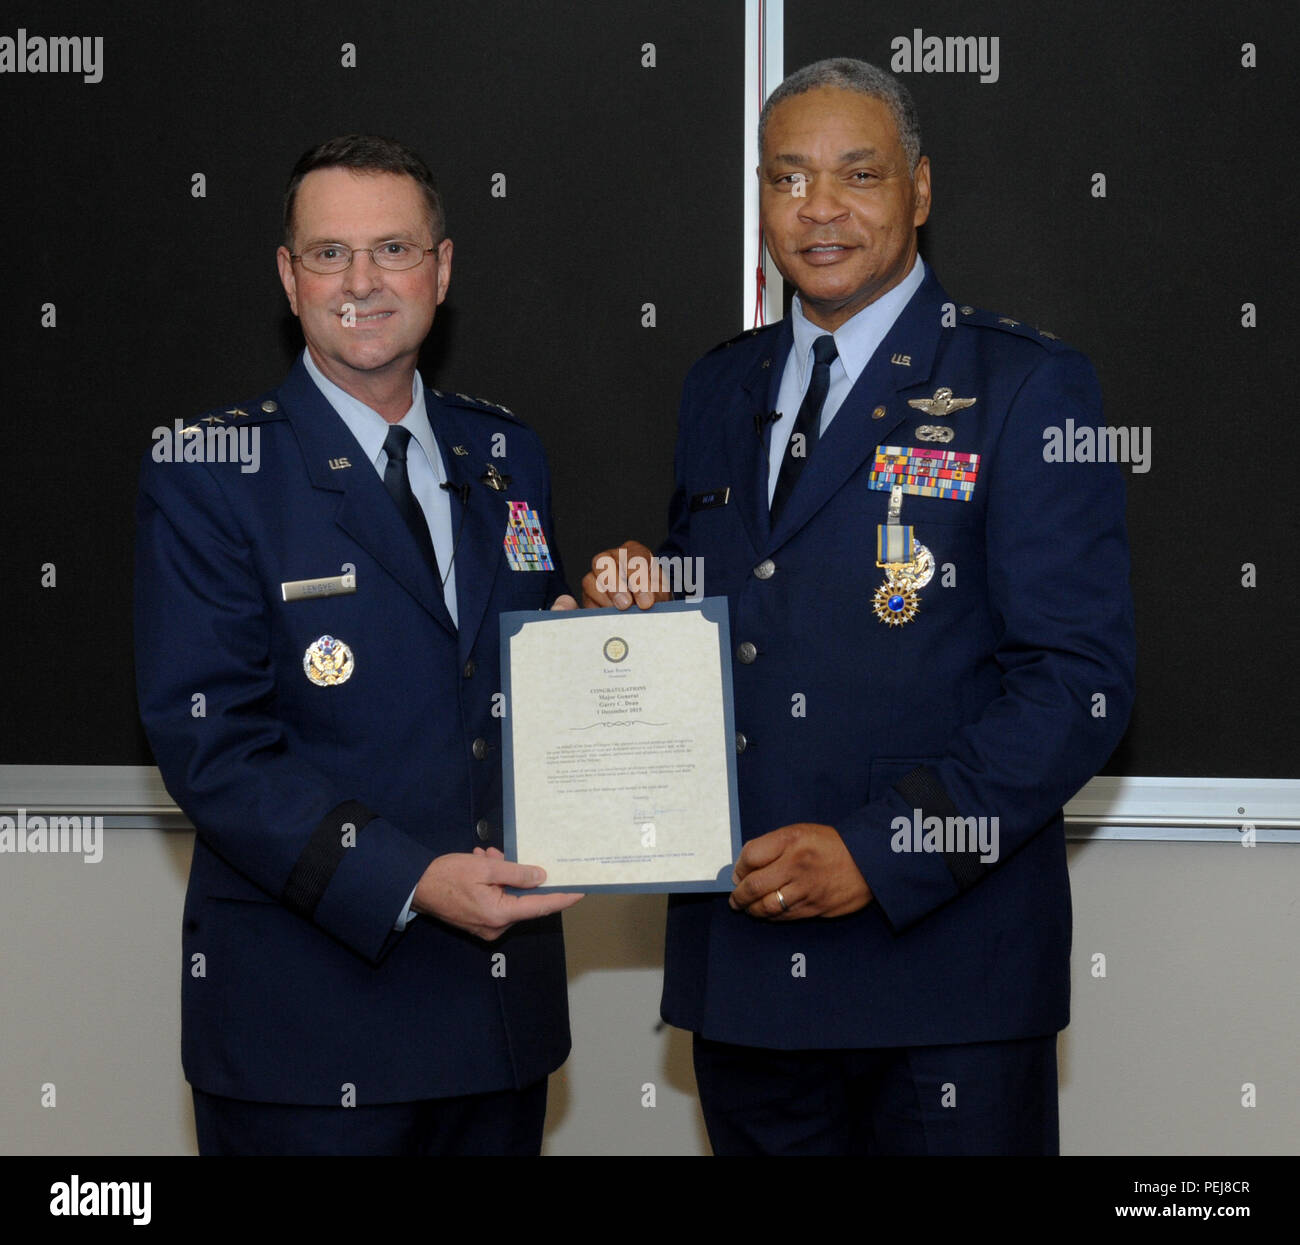 Air Force Academy Dean Of Faculty Announces Retirement: Air Force Assistant Stock Photos & Air Force Assistant